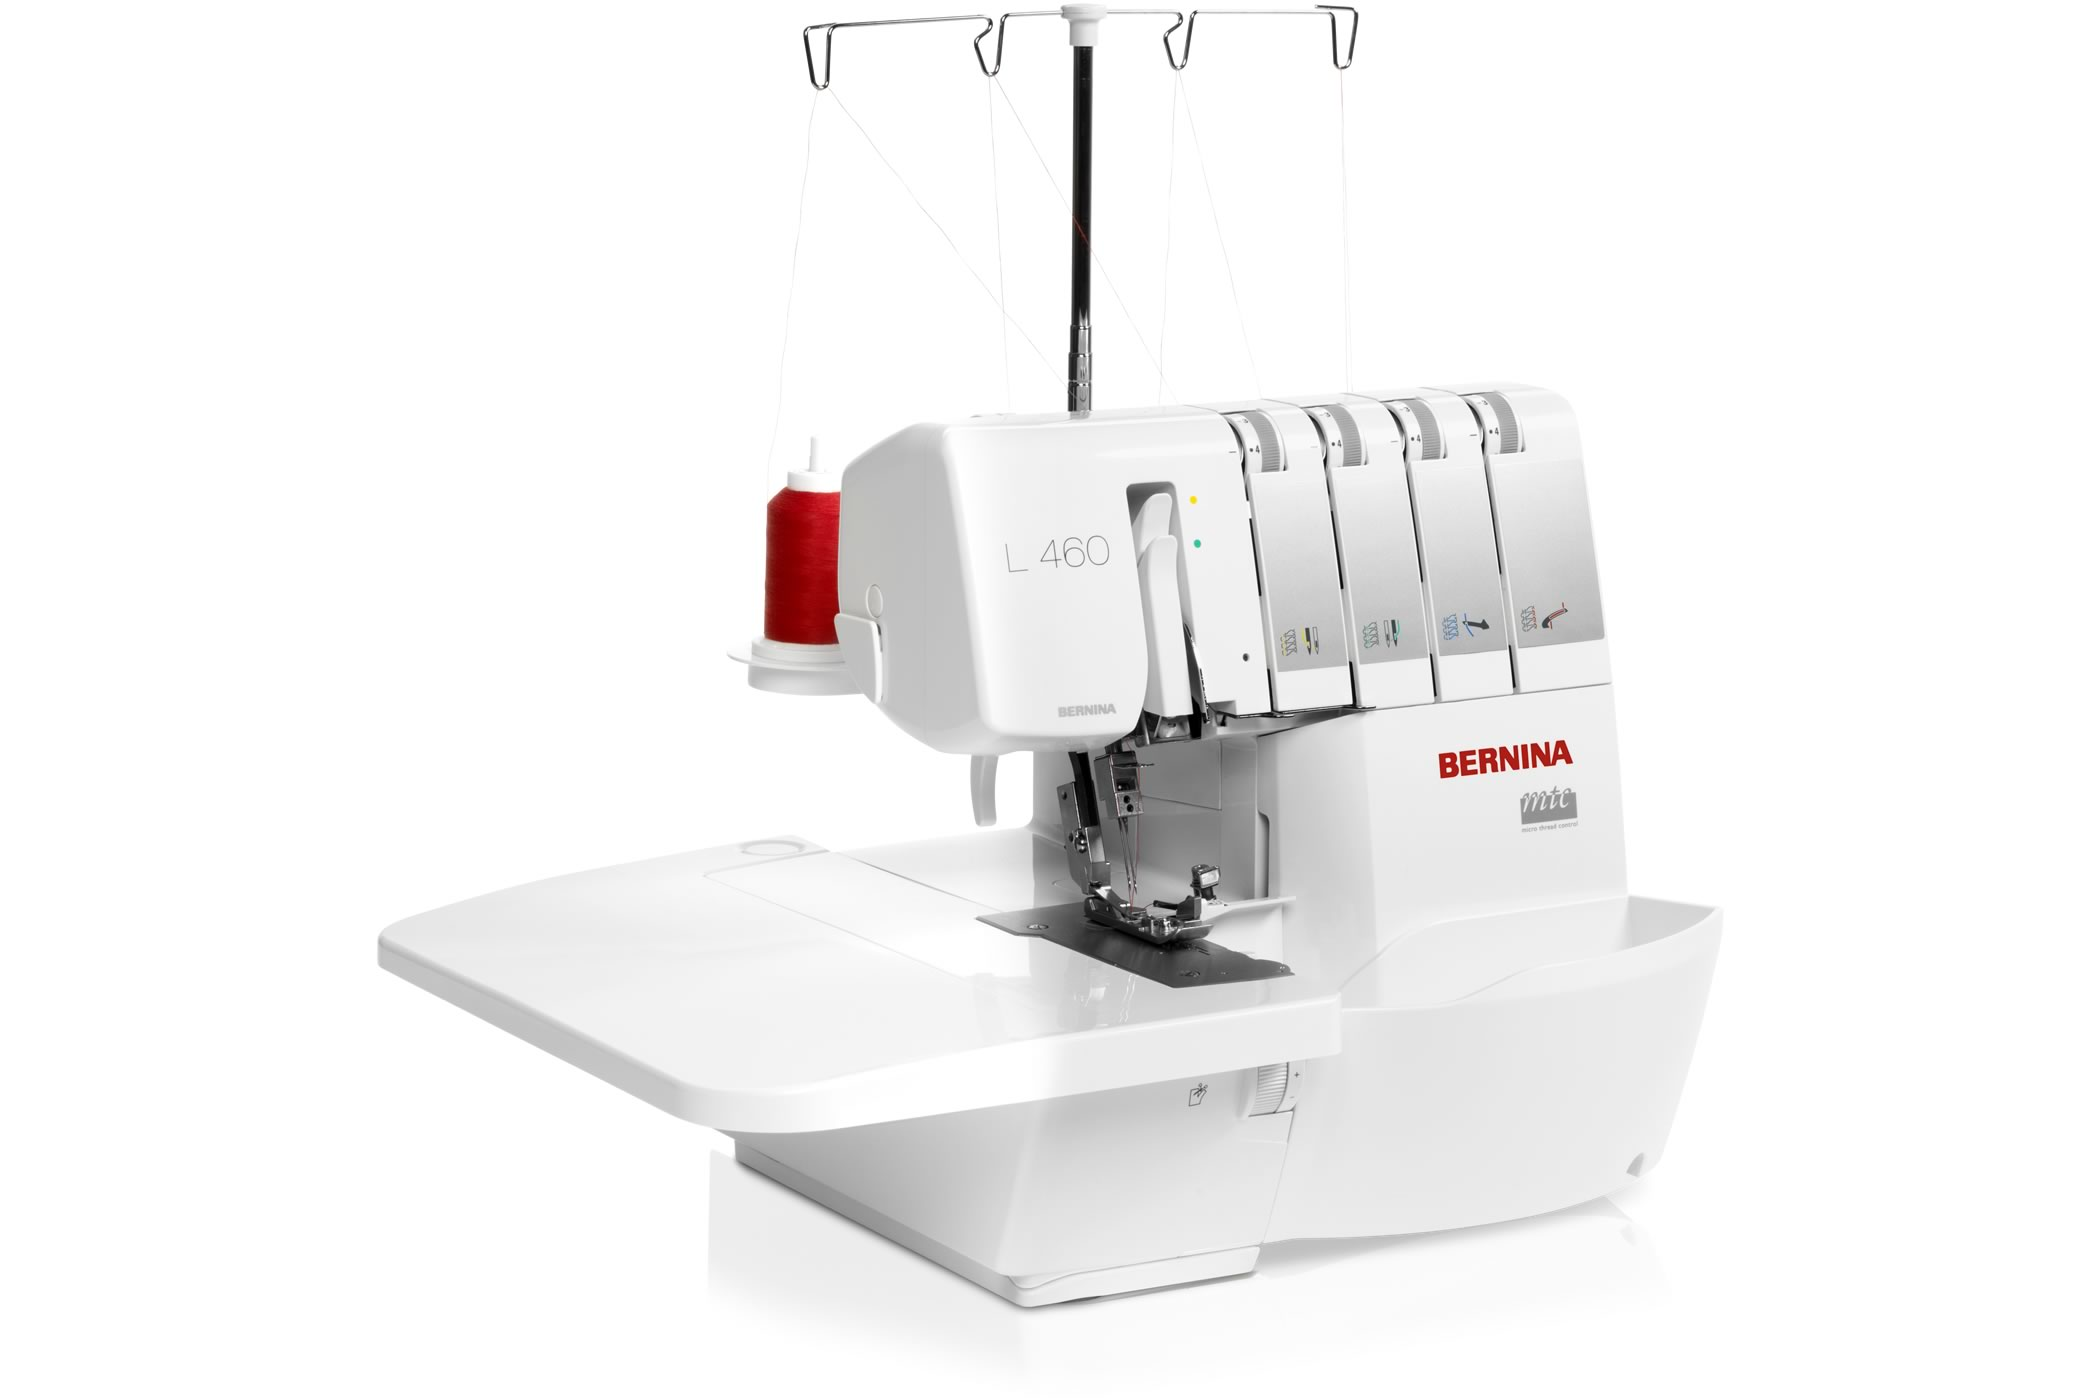 BERNINA Overlocker/Serger